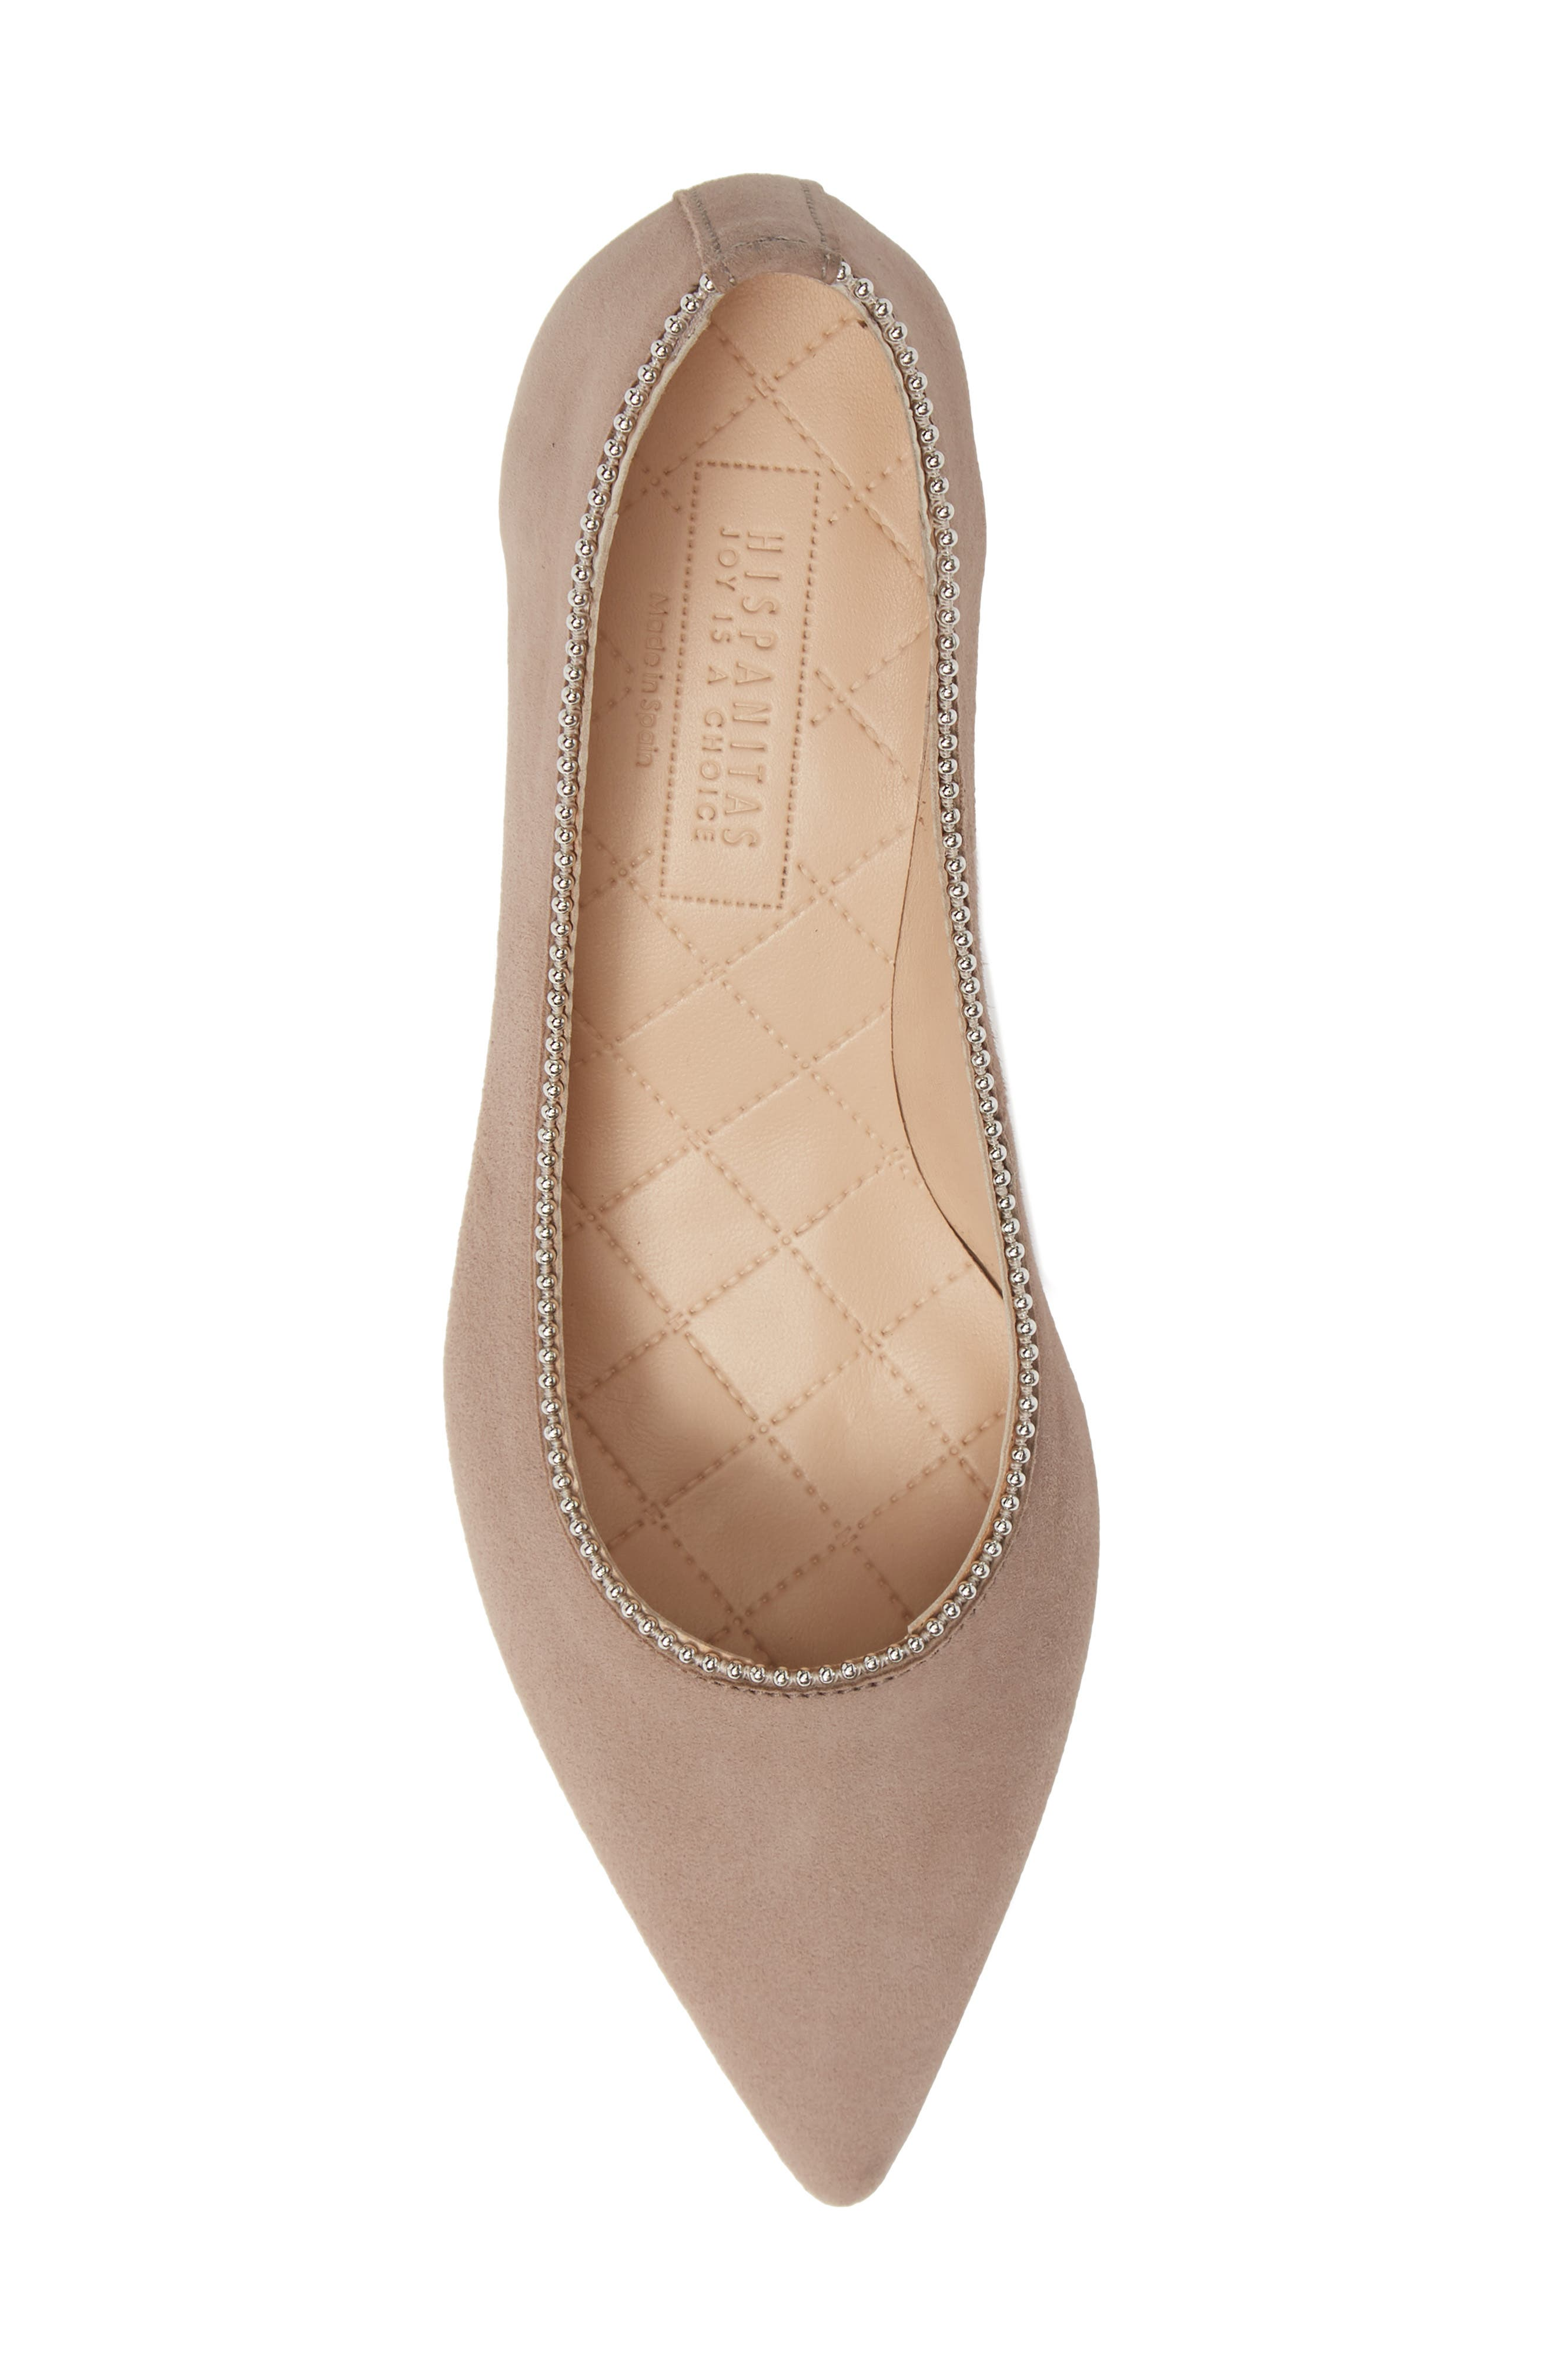 HISPANITAS, Carina Ball Chain Pointy Toe Pump, Alternate thumbnail 5, color, BEIGE SUEDE